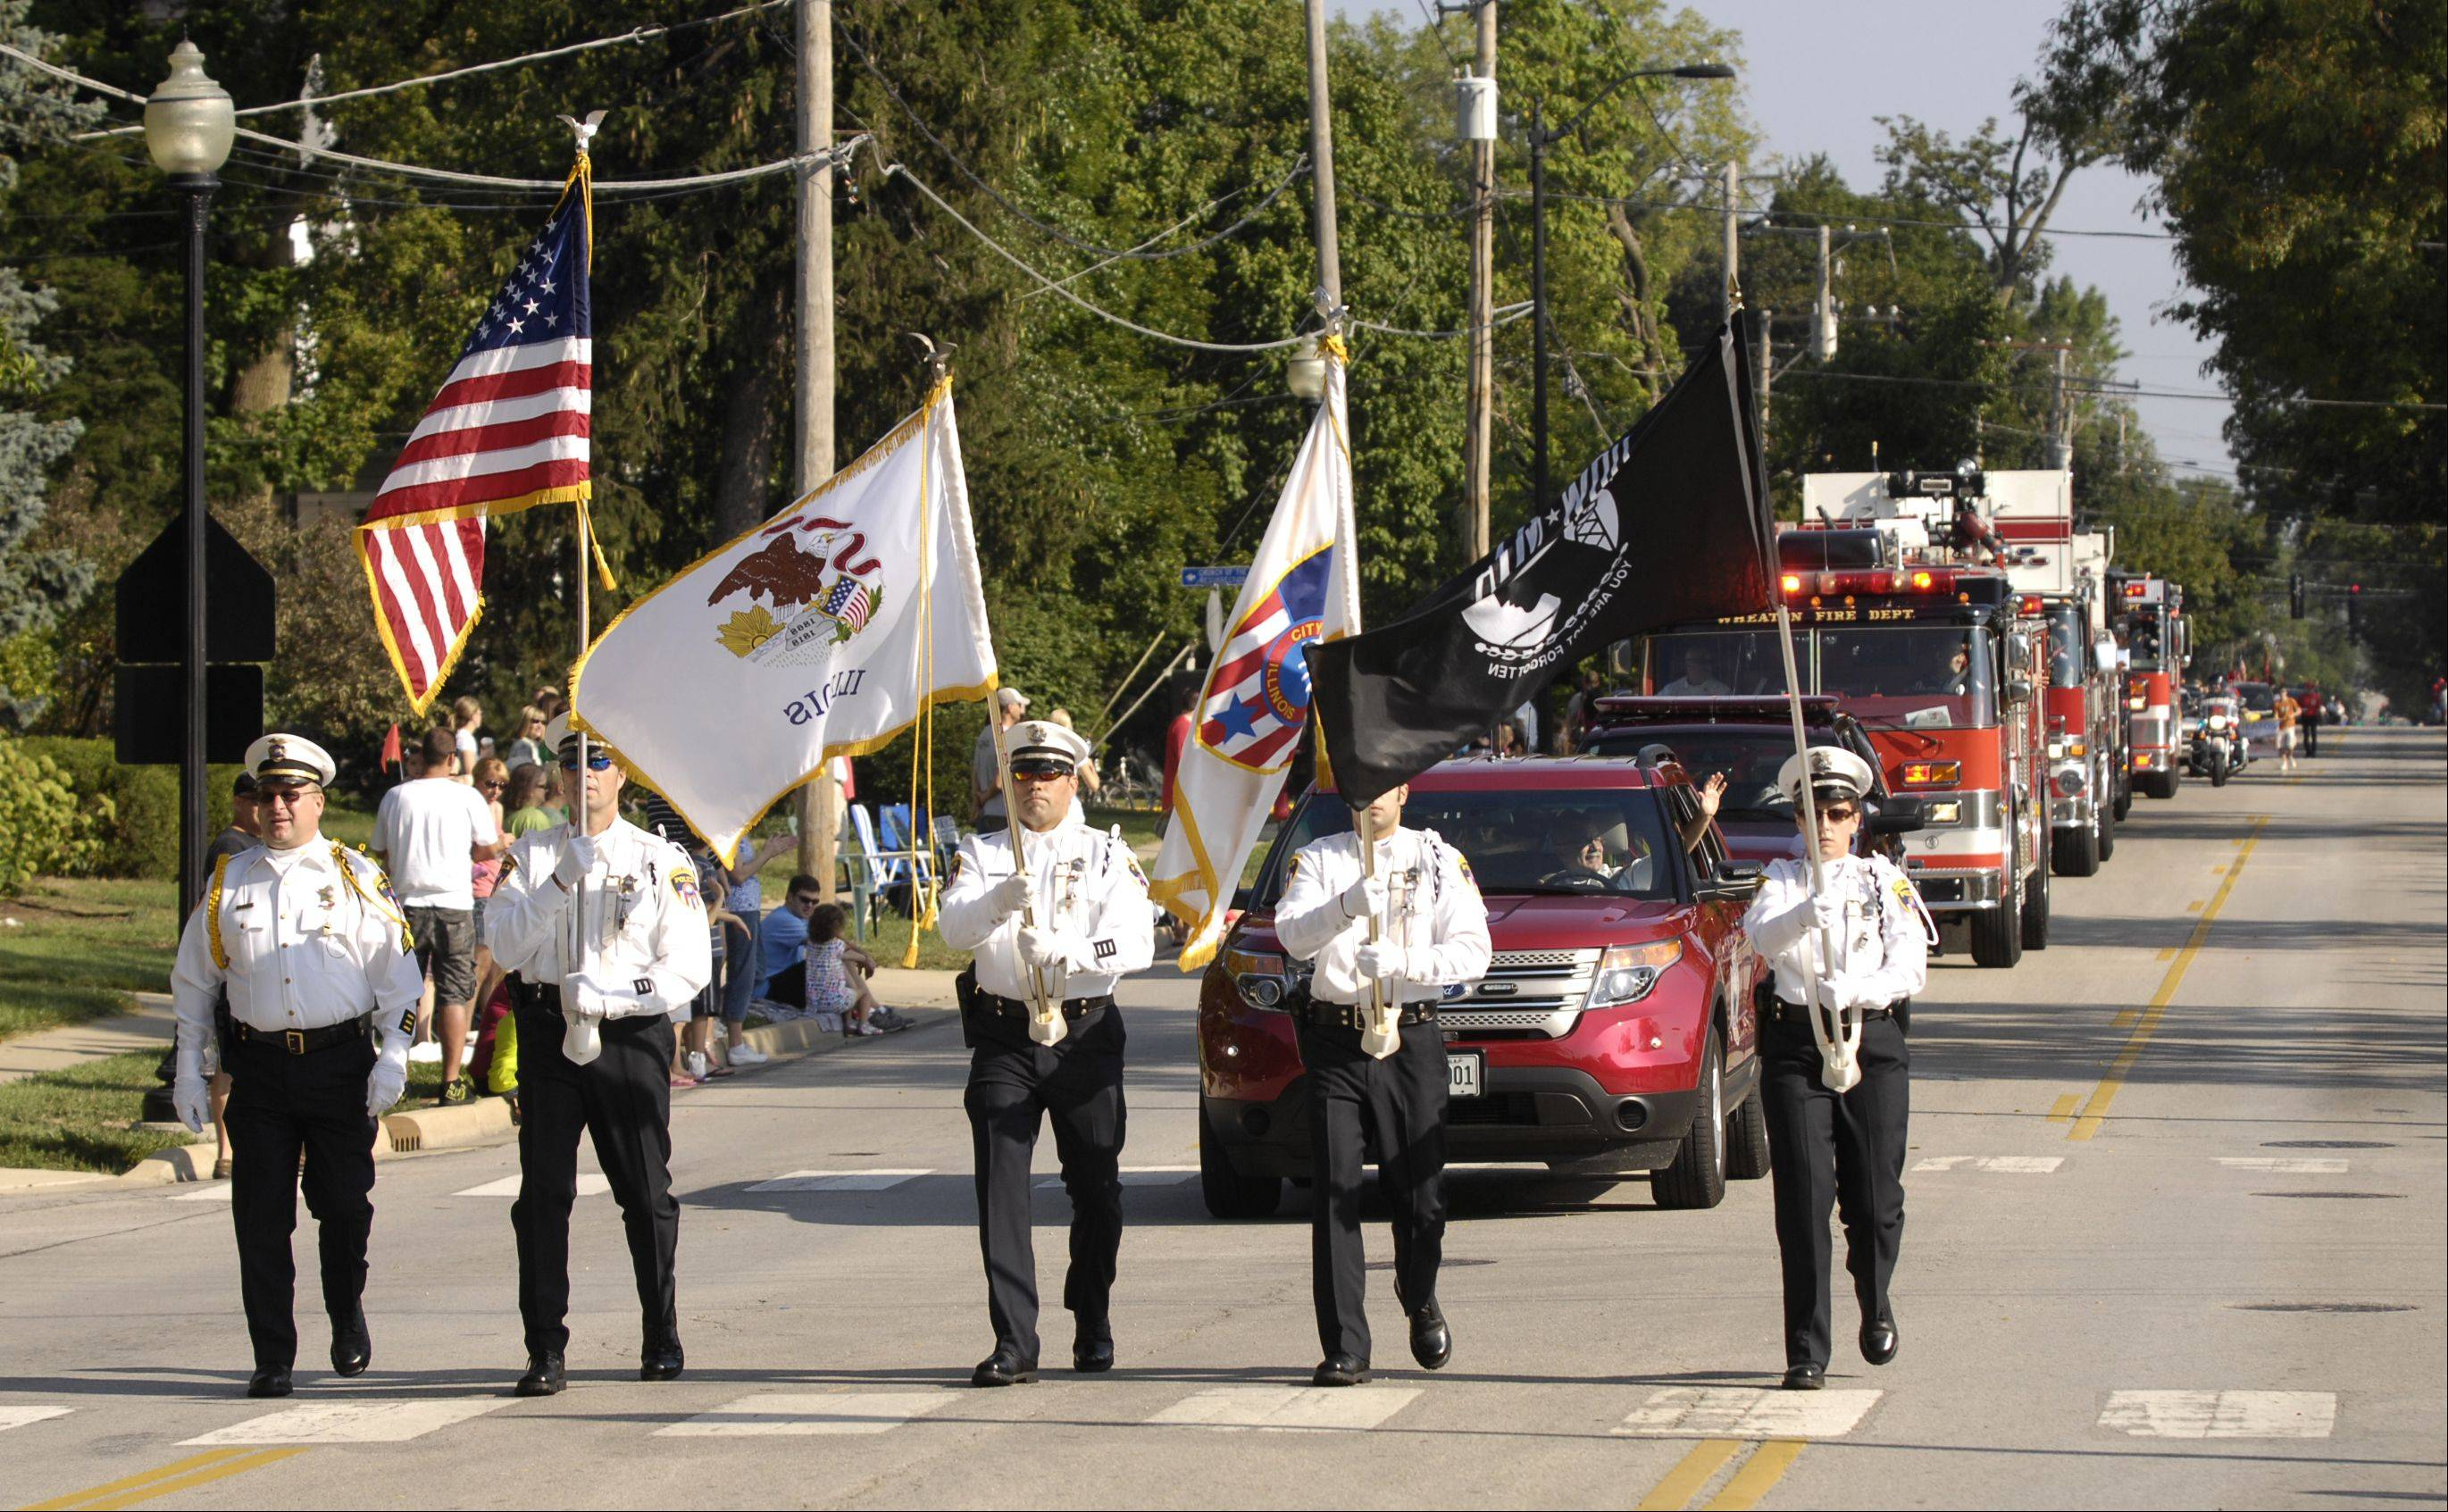 The Wheaton Police Honor Guard lead the rescheduled Wheaton Fourth of July parade on Labor Day. The parade was rescheduled because of storm damage from July 1.